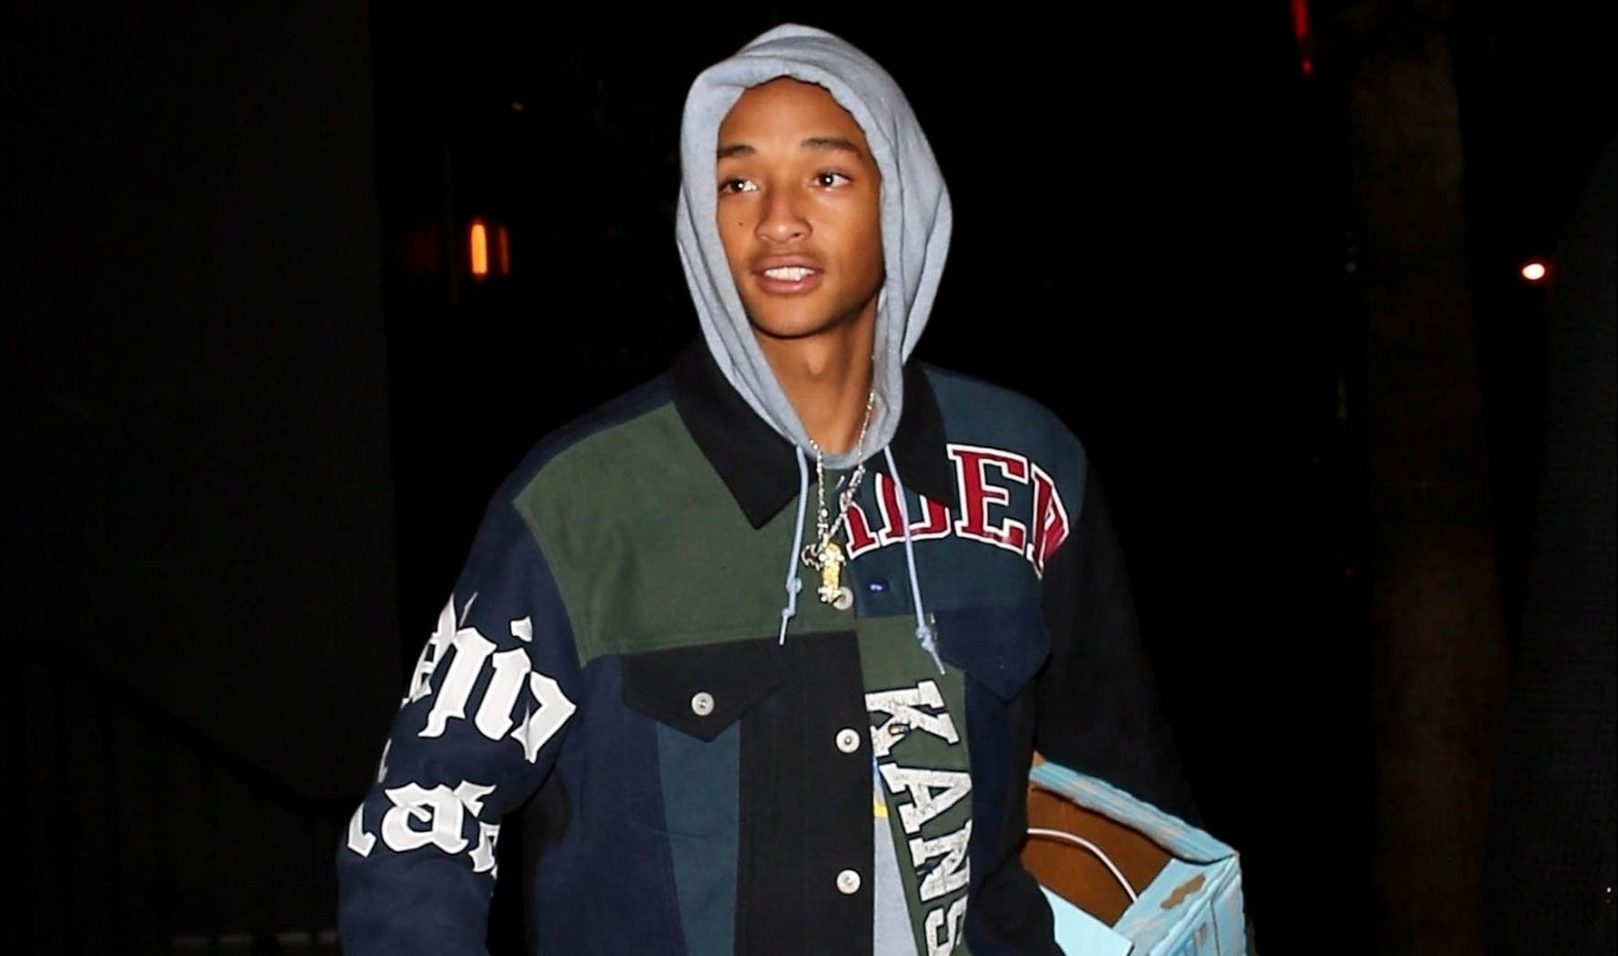 Jaden Smith steps out solo for Travis Scott's party after recent 'dates' with mystery women